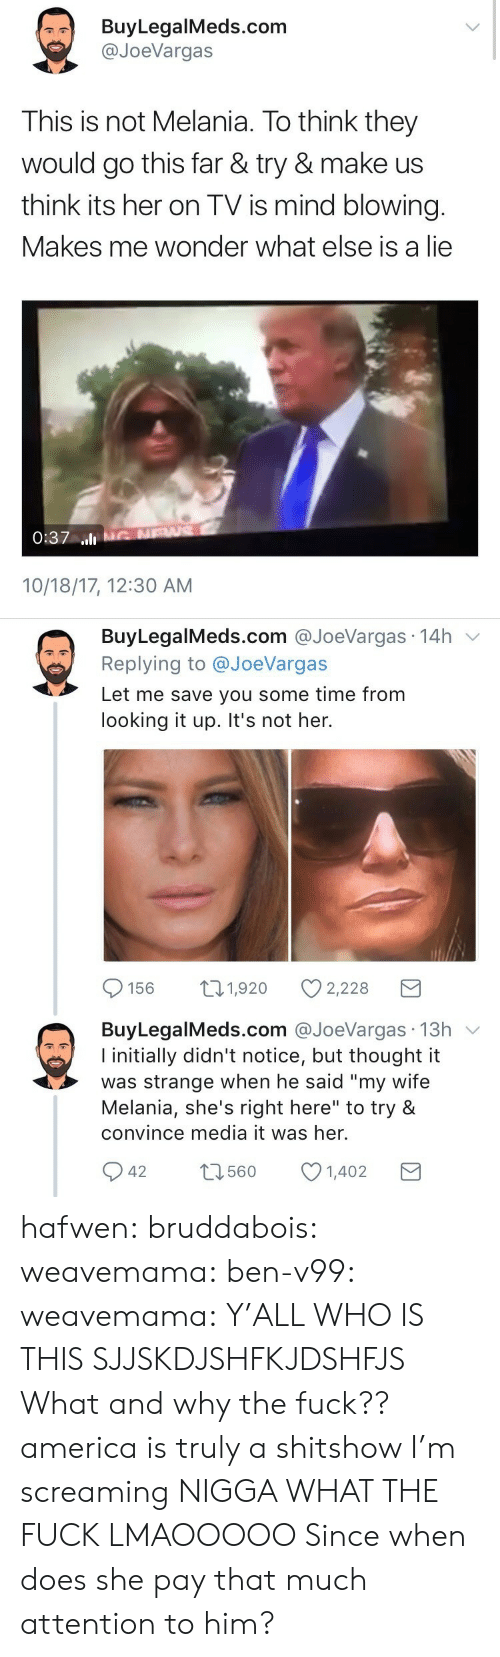 """Shes Right: BuyLegalMeds.com  @JoeVargas  This is not Melania. To think they  would go this far & try & make us  think its her on TV is mind blowing.  Makes me wonder what else is a lie  0:37 ll  10/18/17, 12:30 AM   BuyLegalMeds.com @JoeVargas 14h v  Replying to @JoeVargas  Let me save you some time from  looking it up. It's not her.  156 t1,920 2,228  BuyLegalMeds.com @JoeVargas 13h v  I initially didn't notice, but thought it  was strange when he said """"my wife  Melania, she's right here"""" to try &  convince media it was her.  42 1601402  t3560 hafwen:  bruddabois:  weavemama: ben-v99:   weavemama:  Y'ALL WHO IS THIS SJJSKDJSHFKJDSHFJS  What and why the fuck??   america is truly a shitshow I'm screaming   NIGGA WHAT THE FUCK LMAOOOOO  Since when does she pay that much attention to him?"""